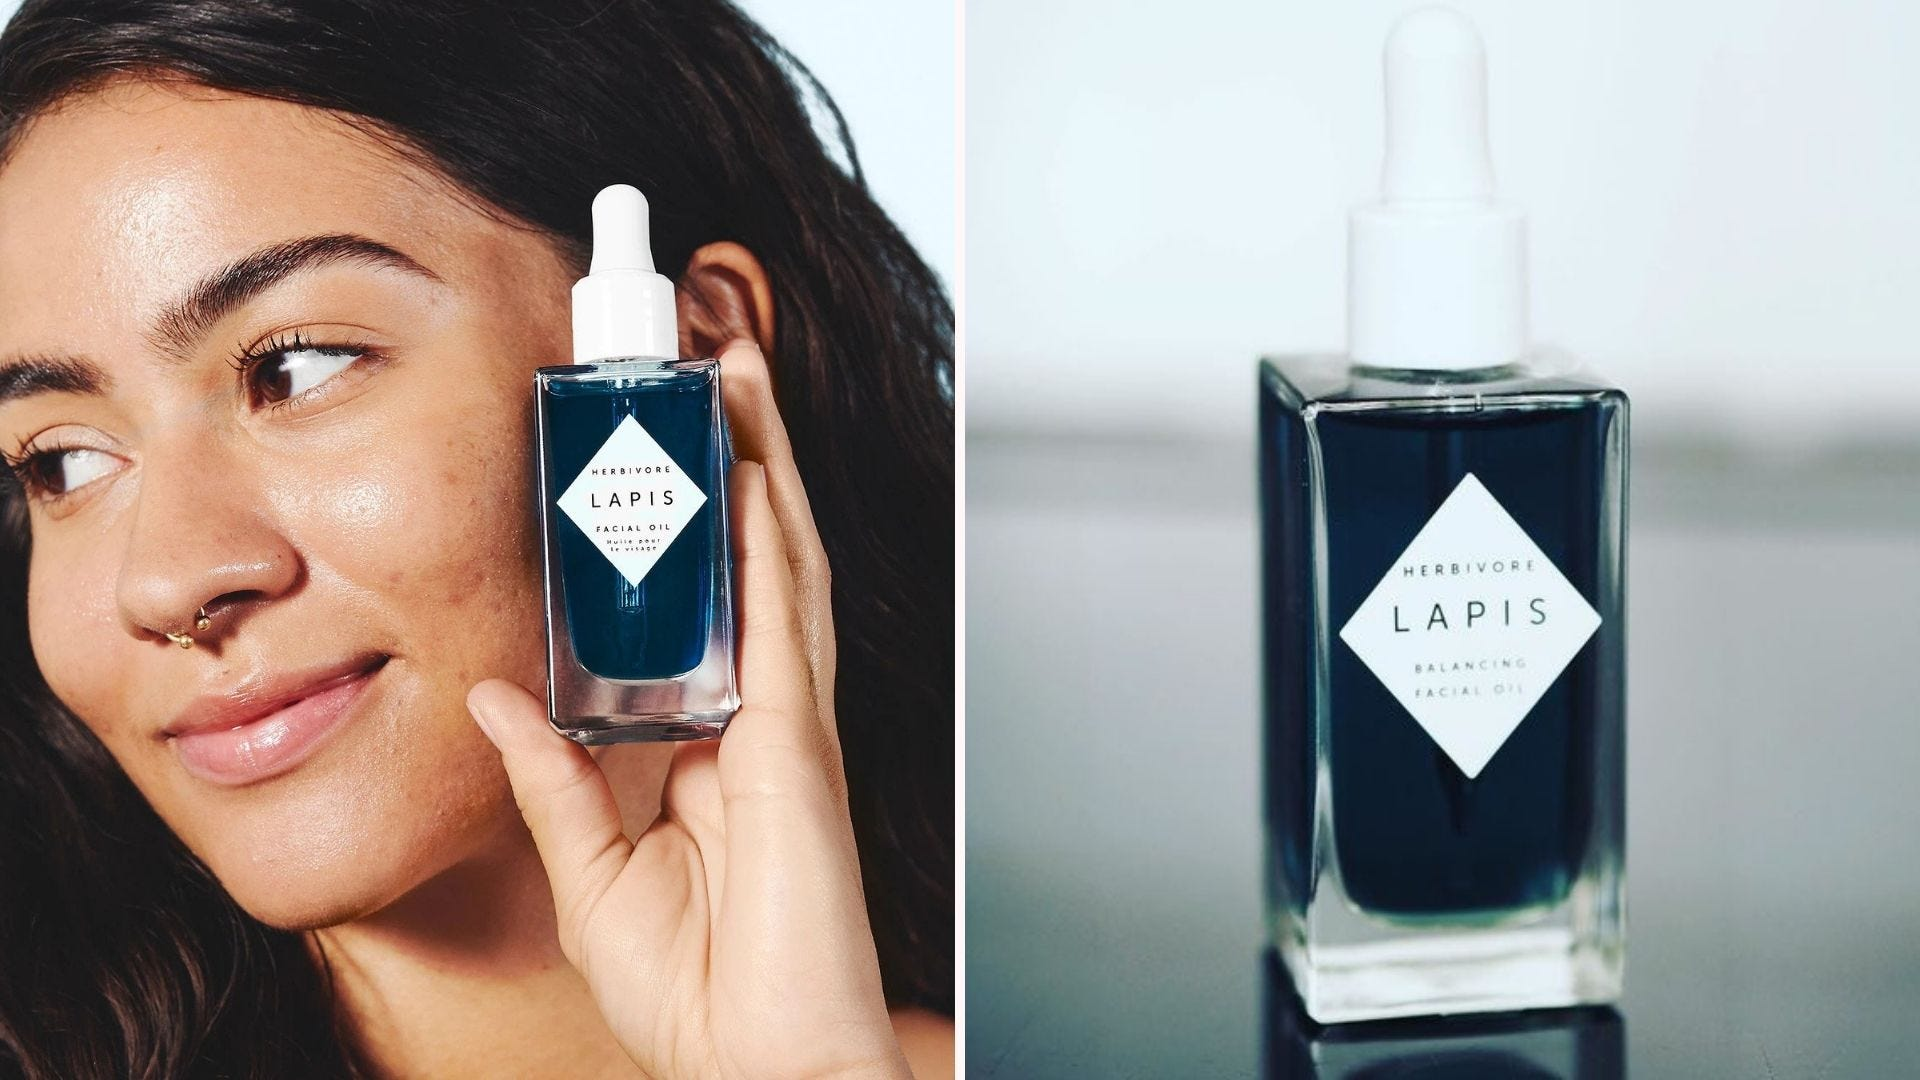 A woman holding up a clear bottle of blue facial oil; a bottle of the same oil